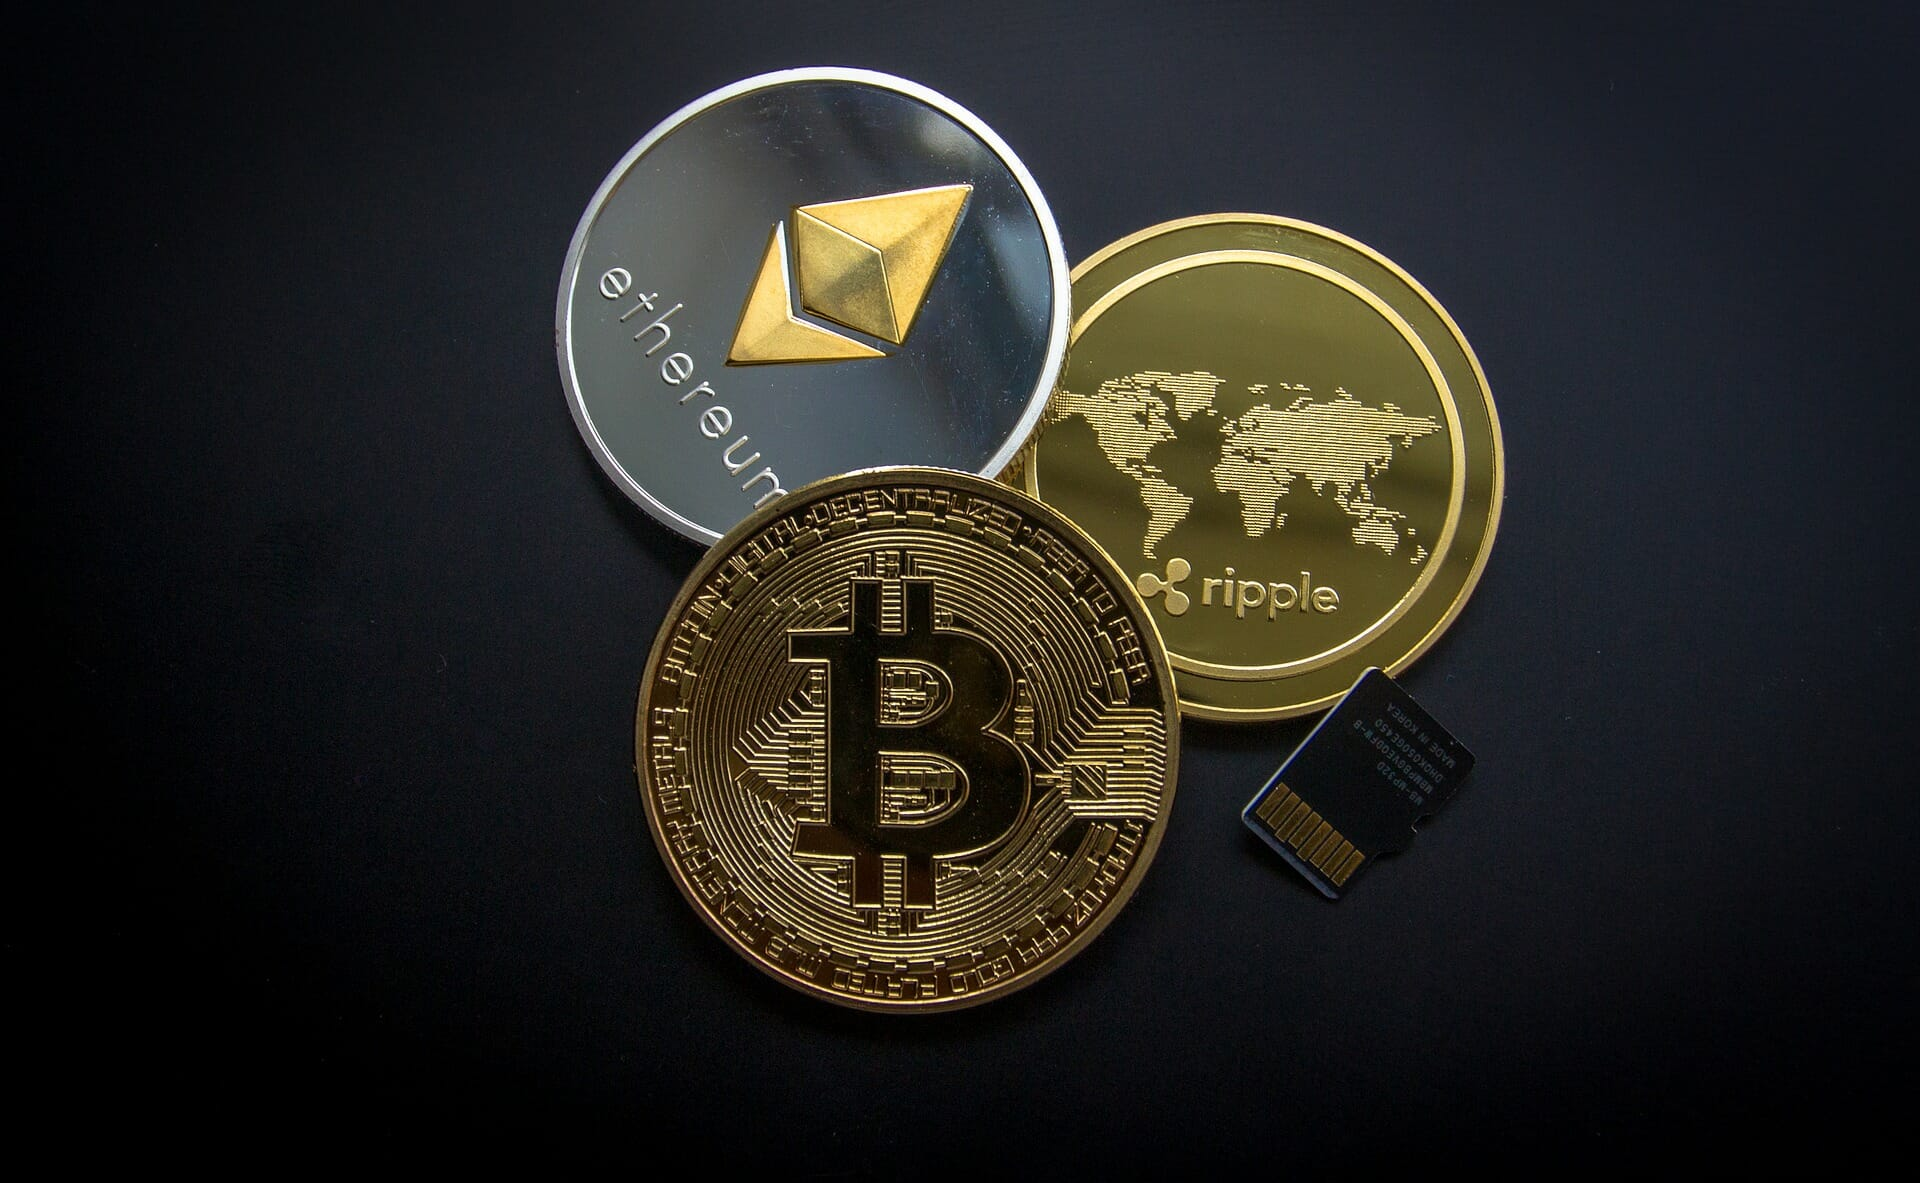 Cryptocurrency: Ethereum, Ripple und Bitcoin